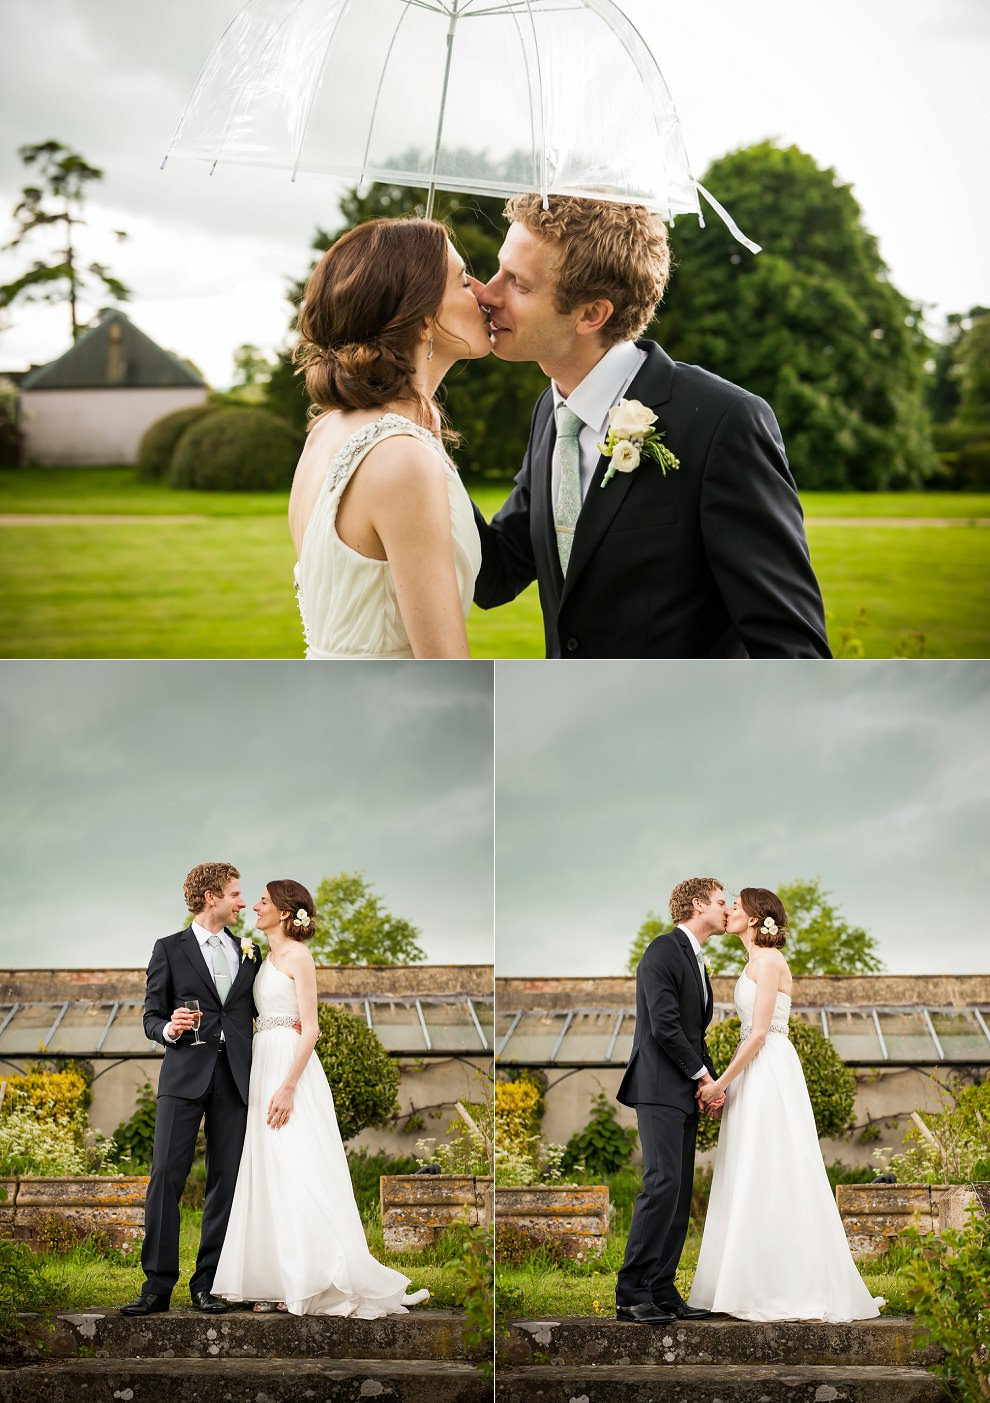 Rachel-Nick-Wormstall-House-Wedding-068